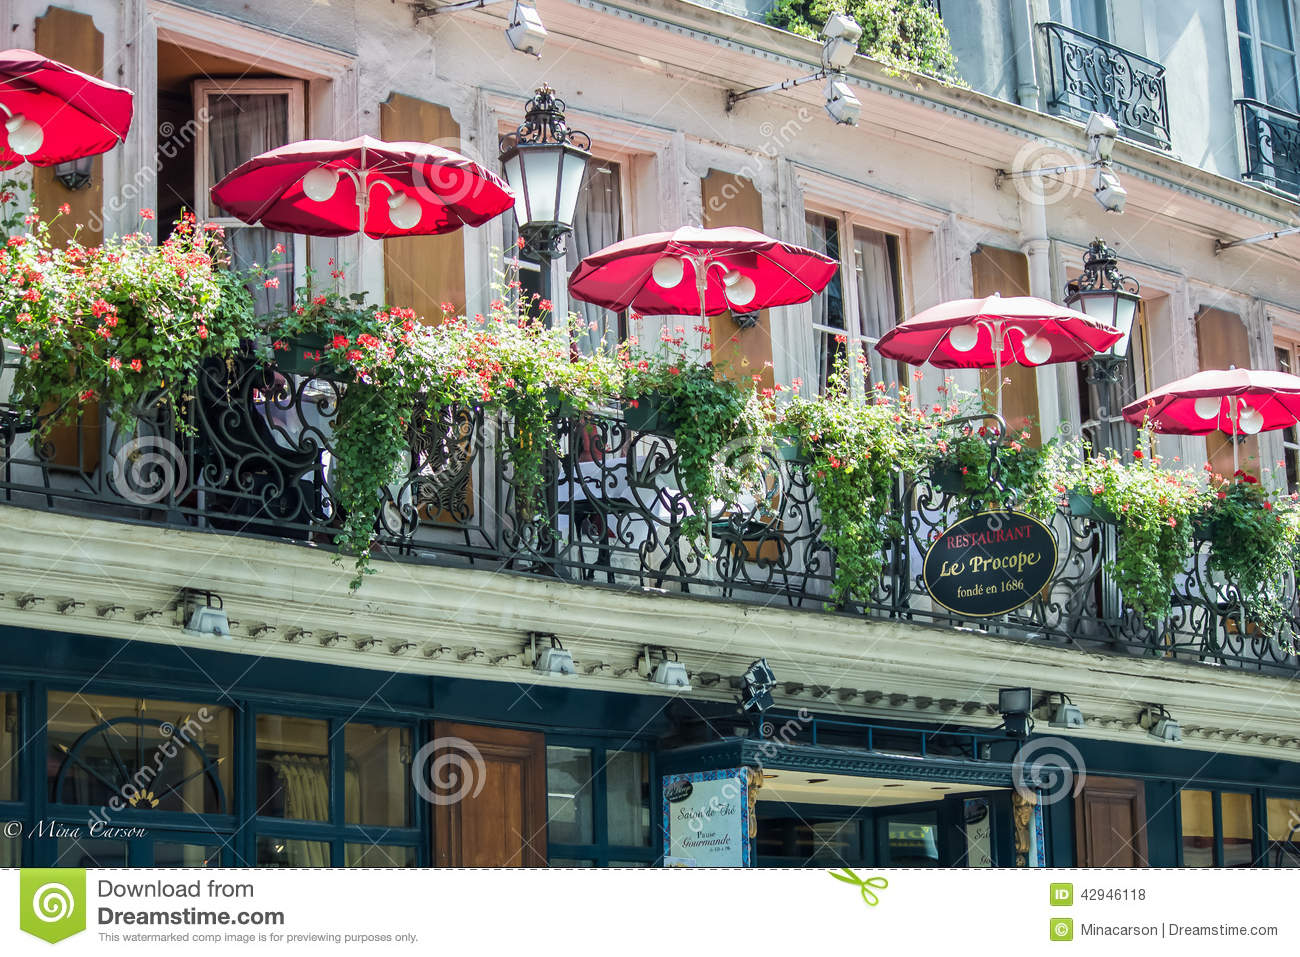 Balcony of le procope old restaurant in paris with red for The balcony cafe